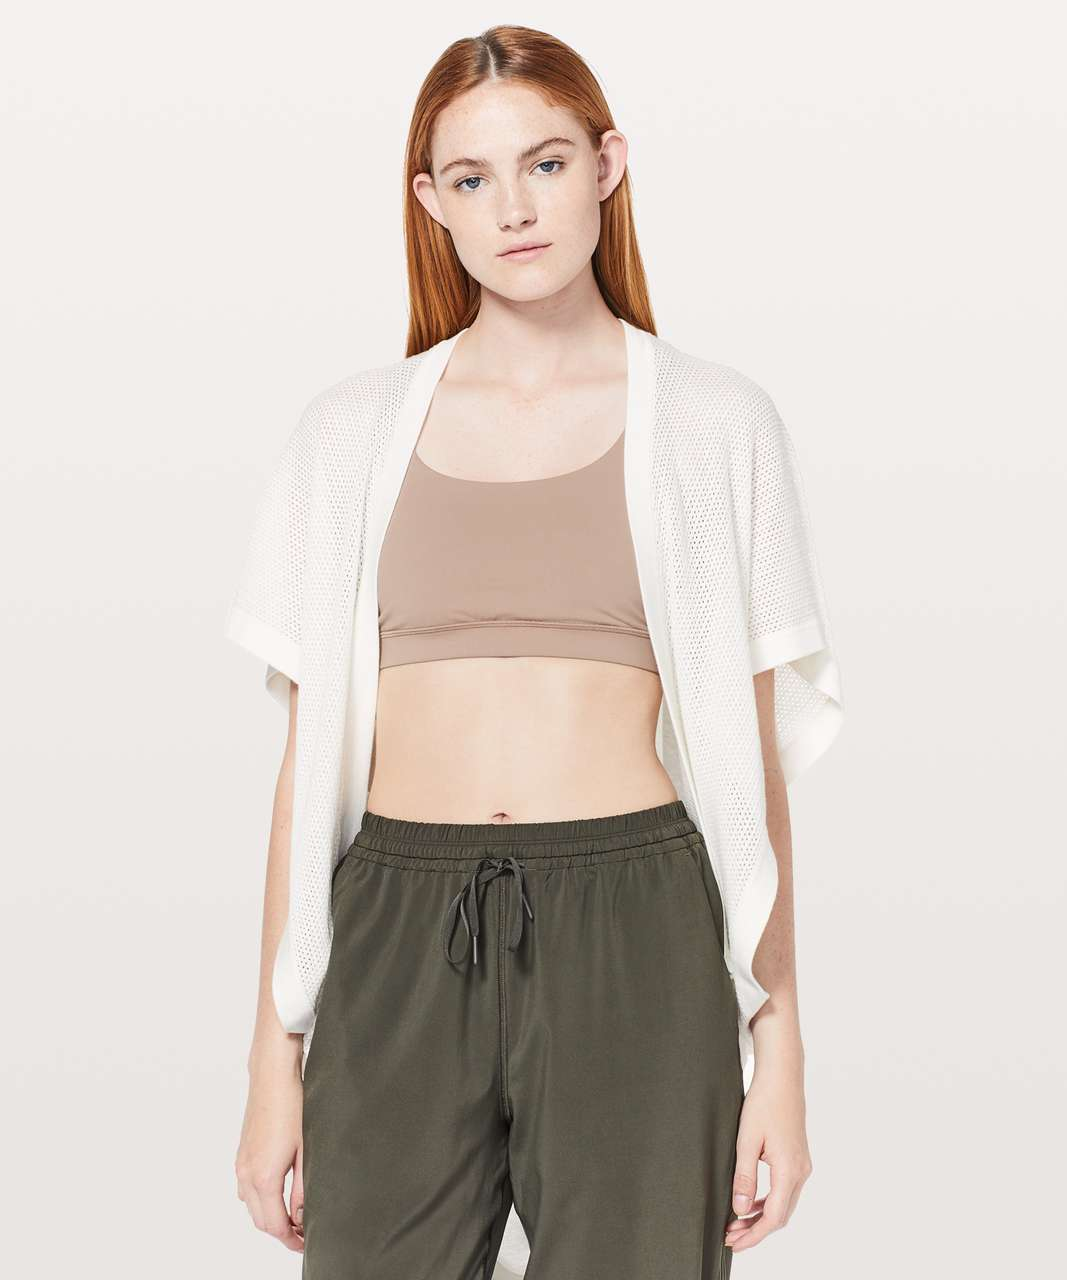 Lululemon Long Weekend Wrap - White